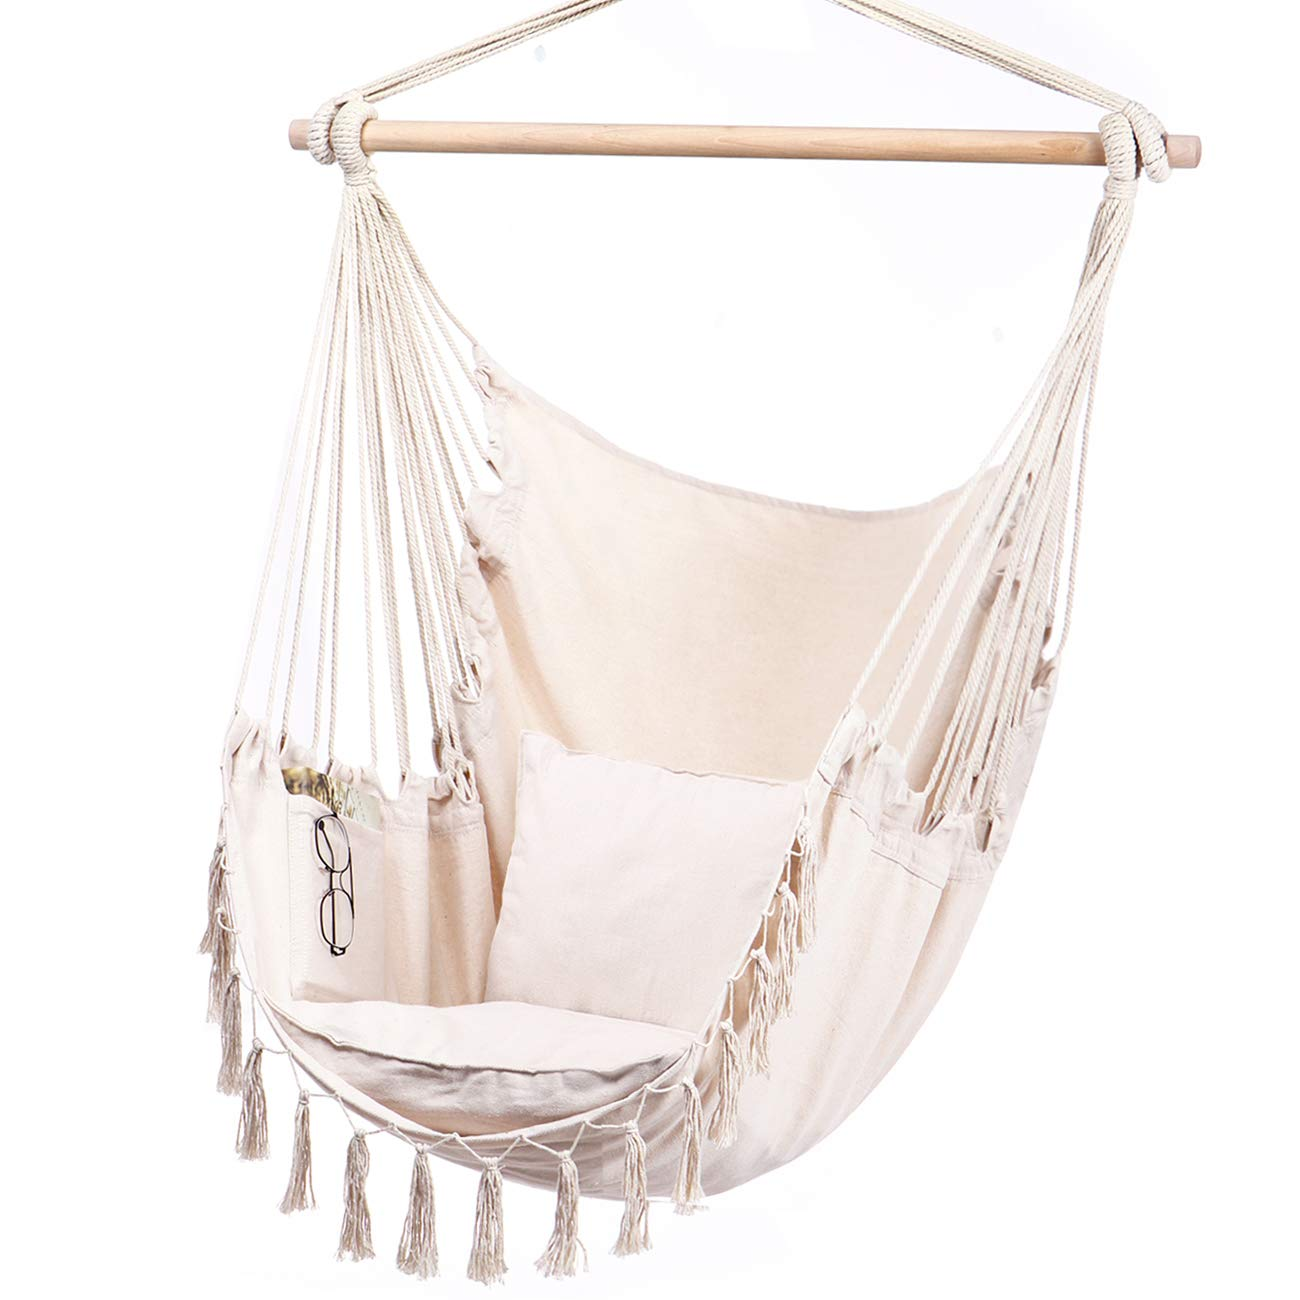 Y- STOP Hammock Chair Hanging Rope Swing-Max 330 Lbs-2 Cushions Included-Large Macrame Hanging Chair with Pocket- Quality Cotton Weave for Superior Comfort Durability Beige